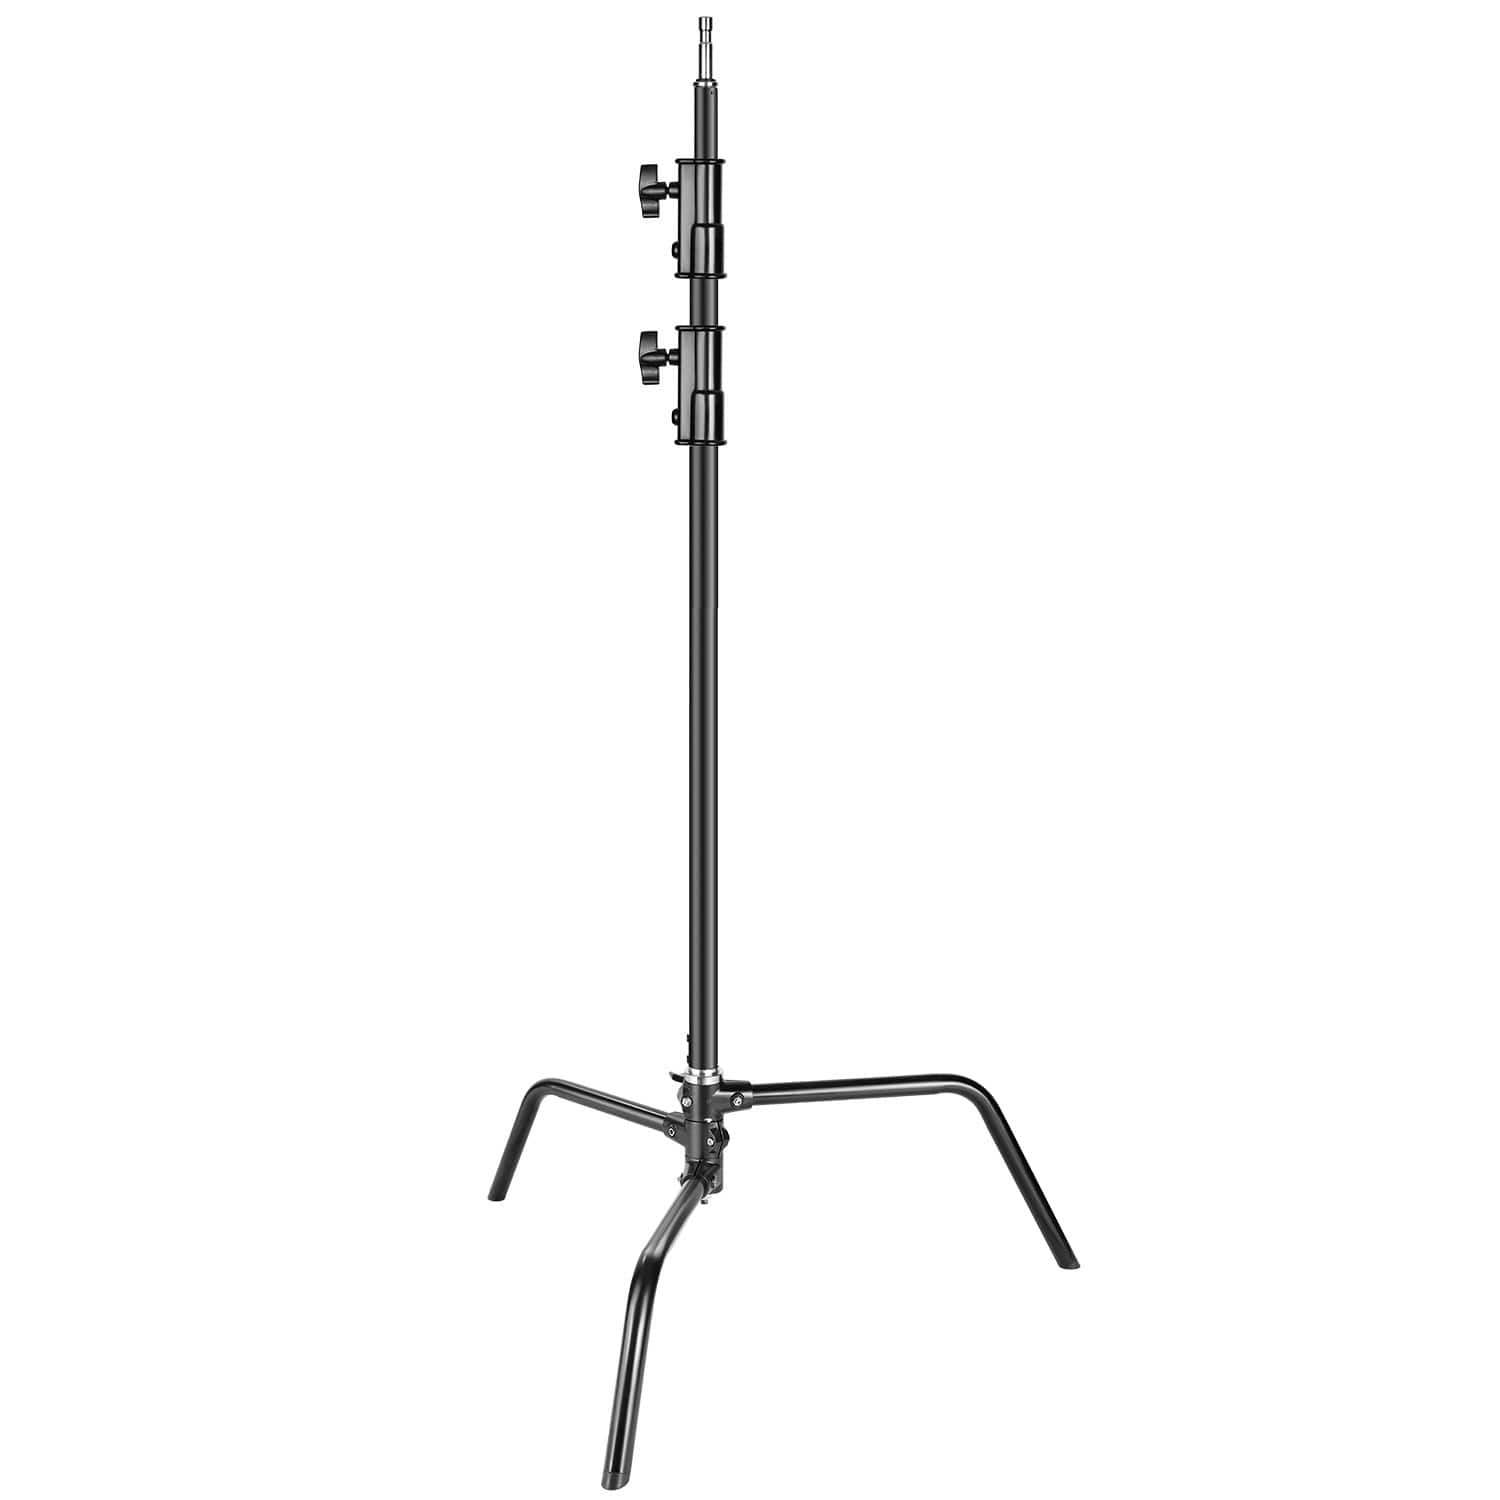 Neewer Heavy Duty C-Stand with Detachable Base (5-10ft/1.6-3.2m) - $74.19 + FSSS